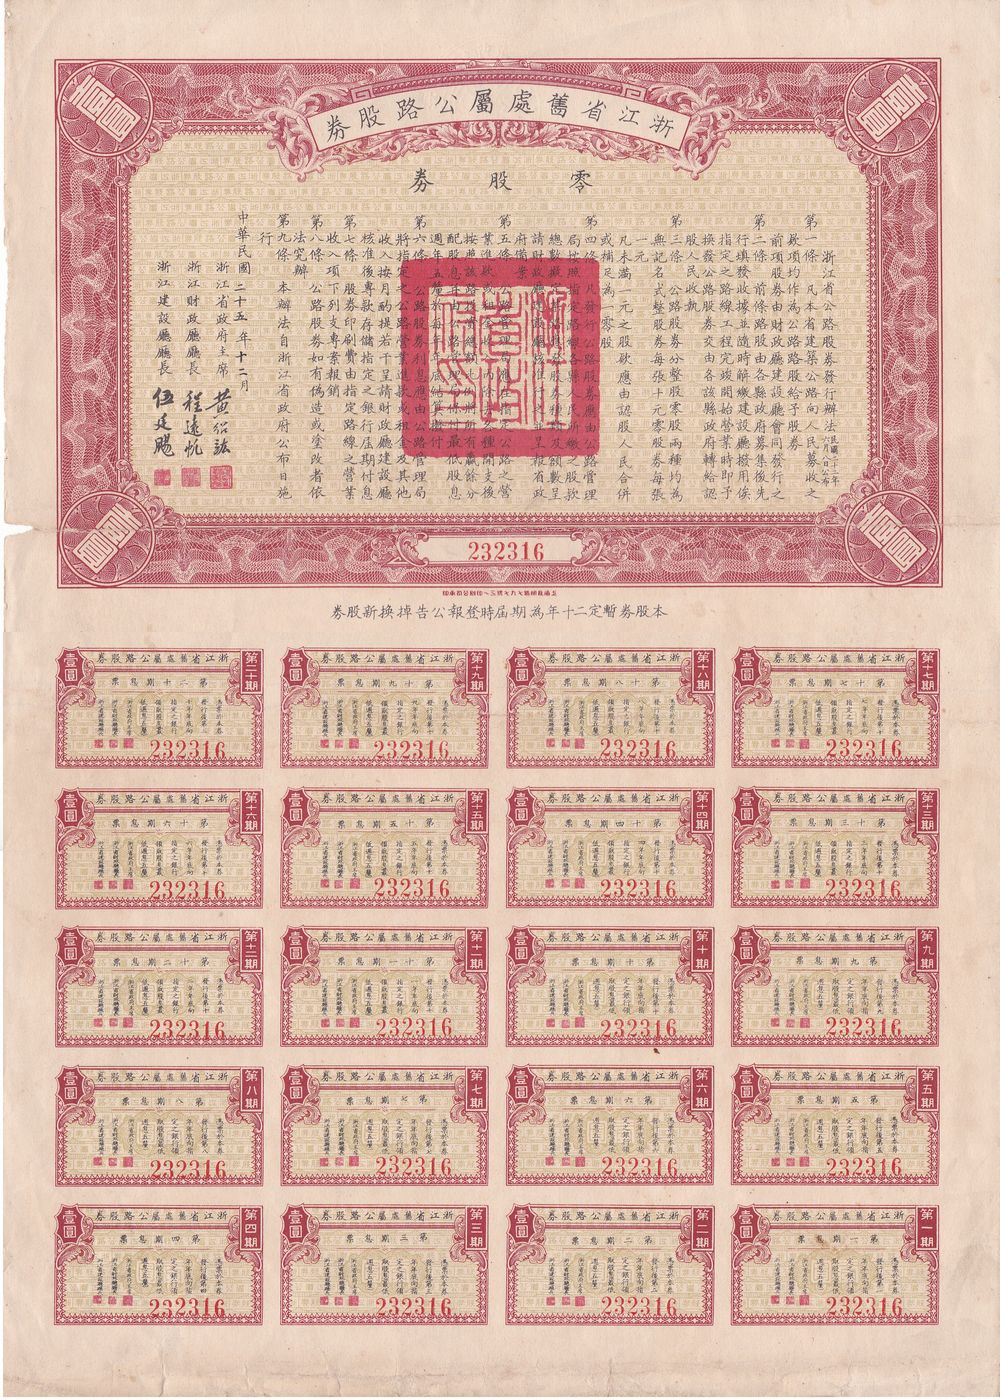 B3031, Zhejiang Province 5% Highway Loan, One Dollar Bond, China 1936